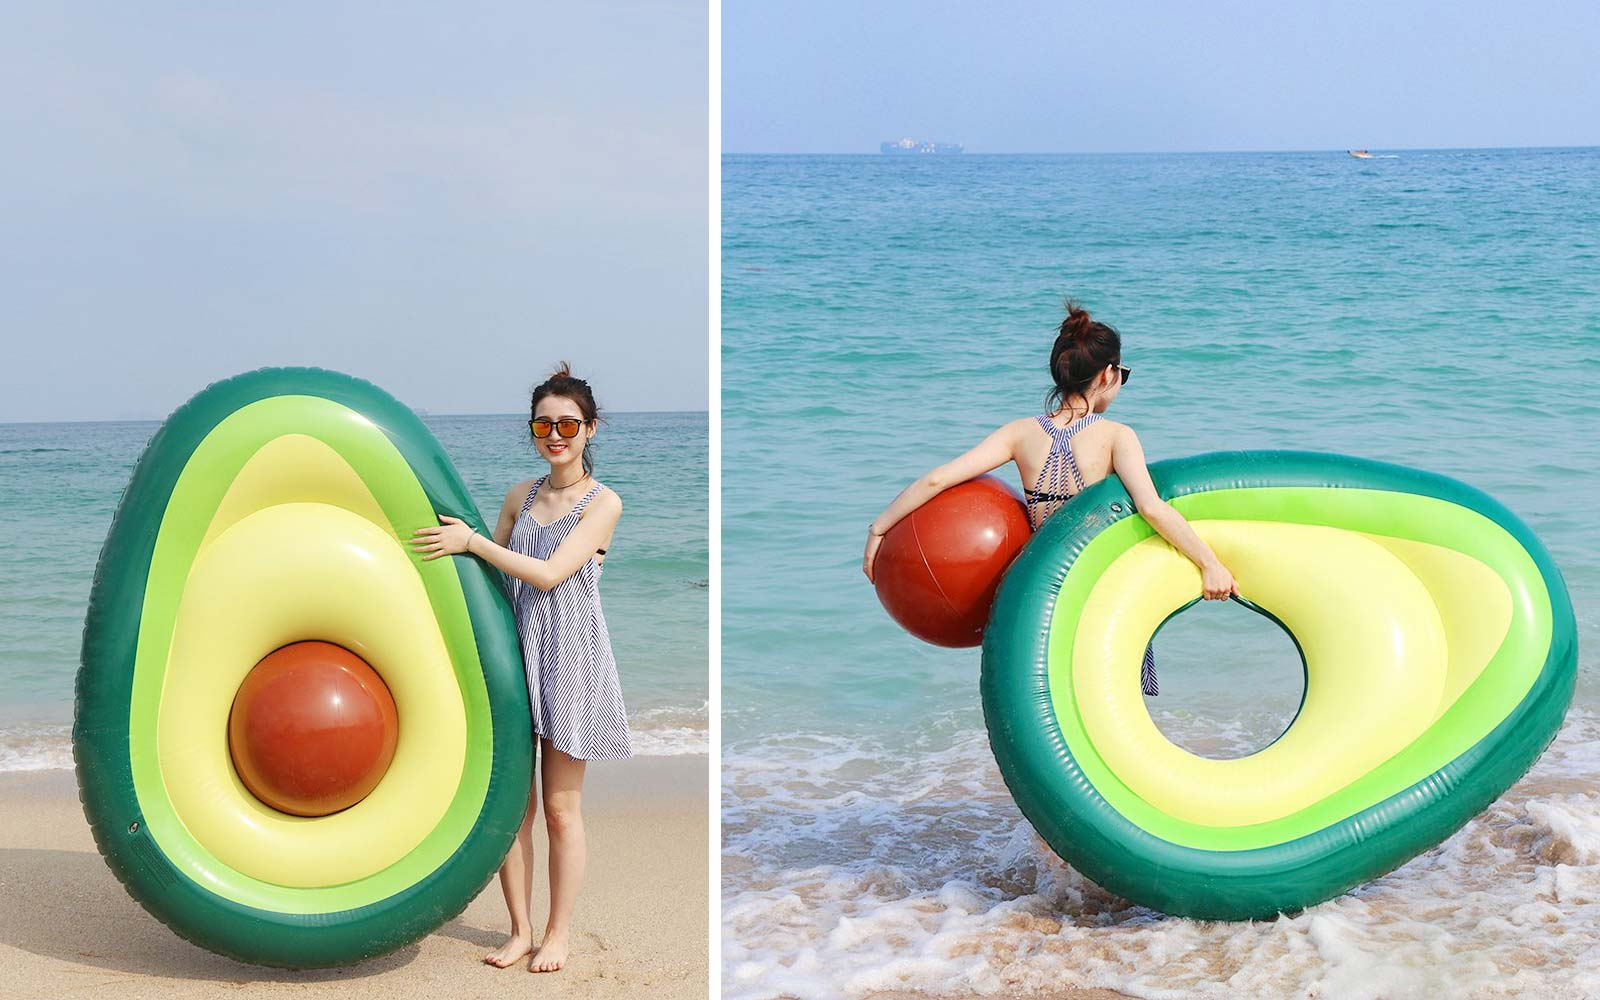 This Avocado-shaped Float Is the Pool Accessory of the Summer — and You Can Buy It on Amazon